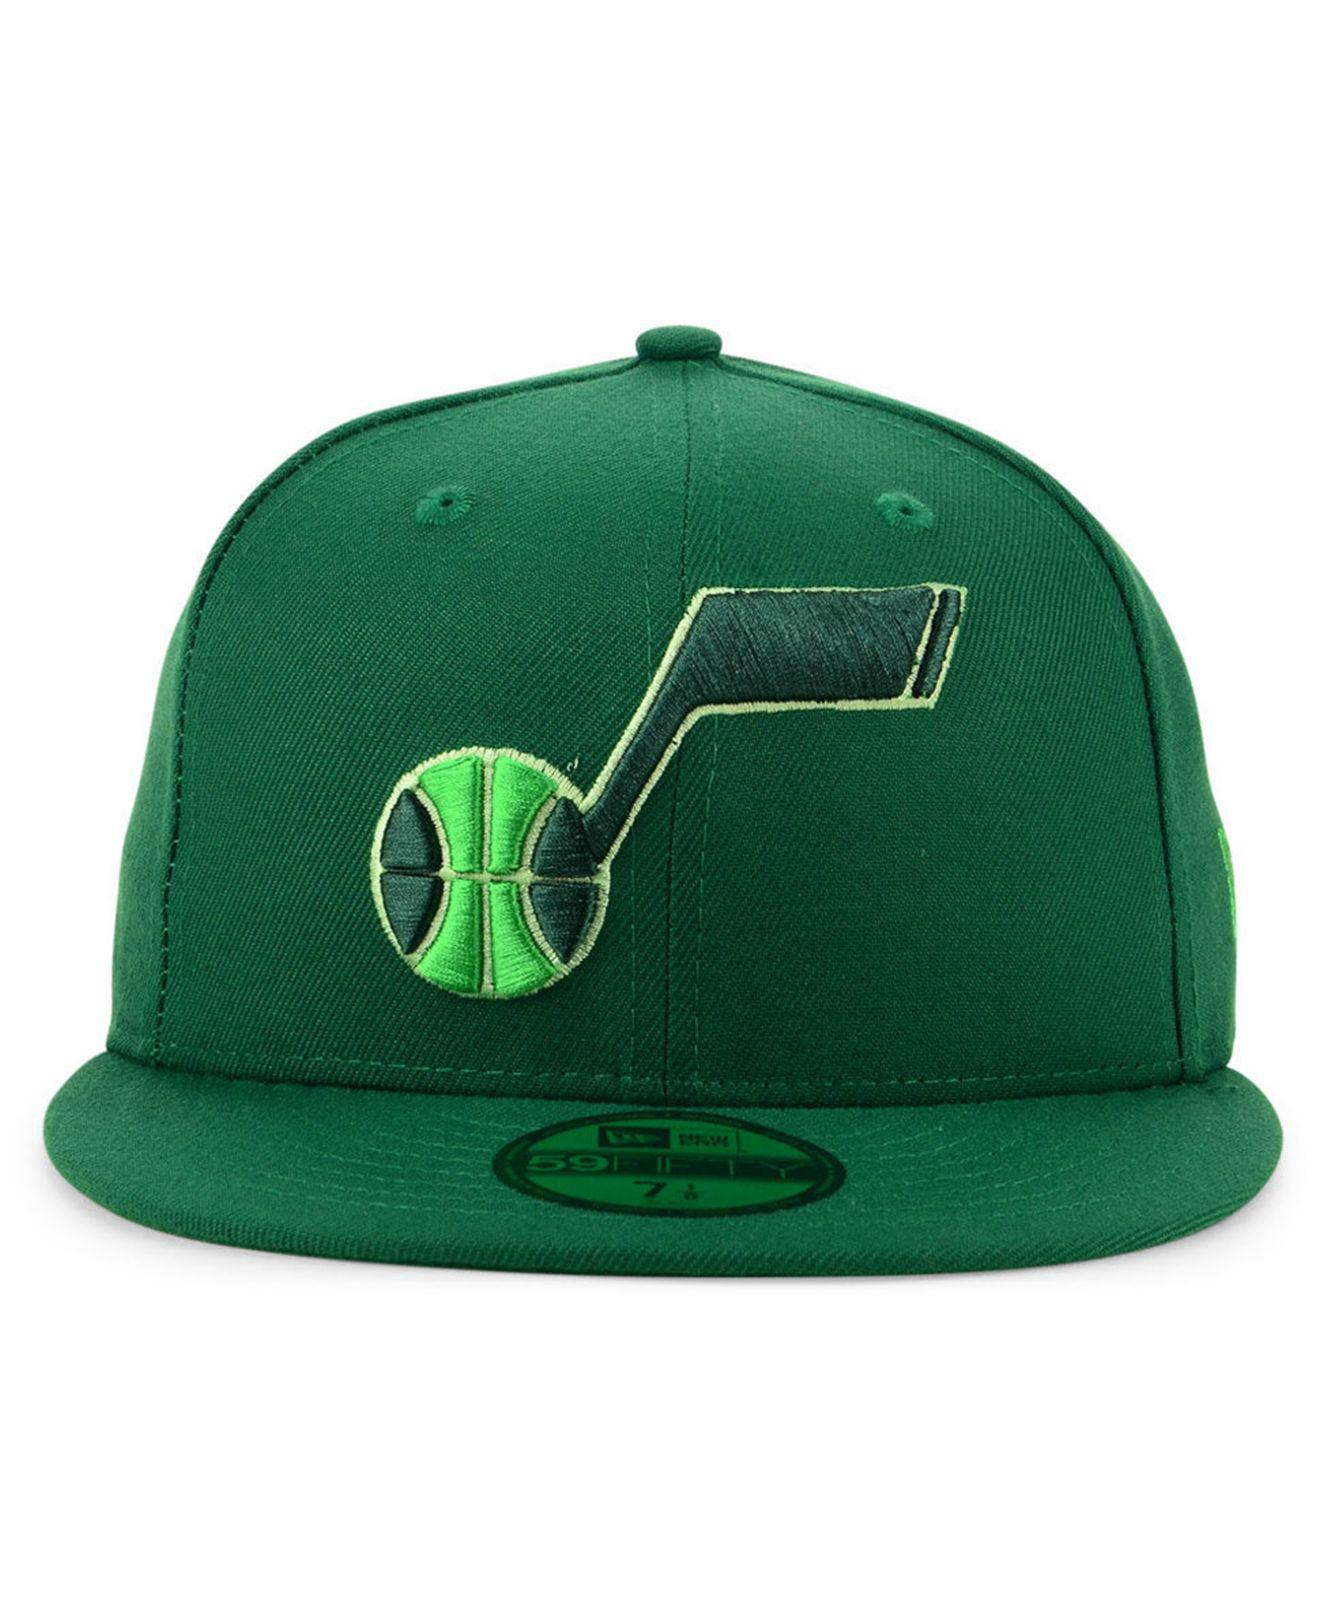 Lyst - KTZ Utah Jazz Color Prism Pack 59fifty Fitted Cap in Green for Men cf73b1736